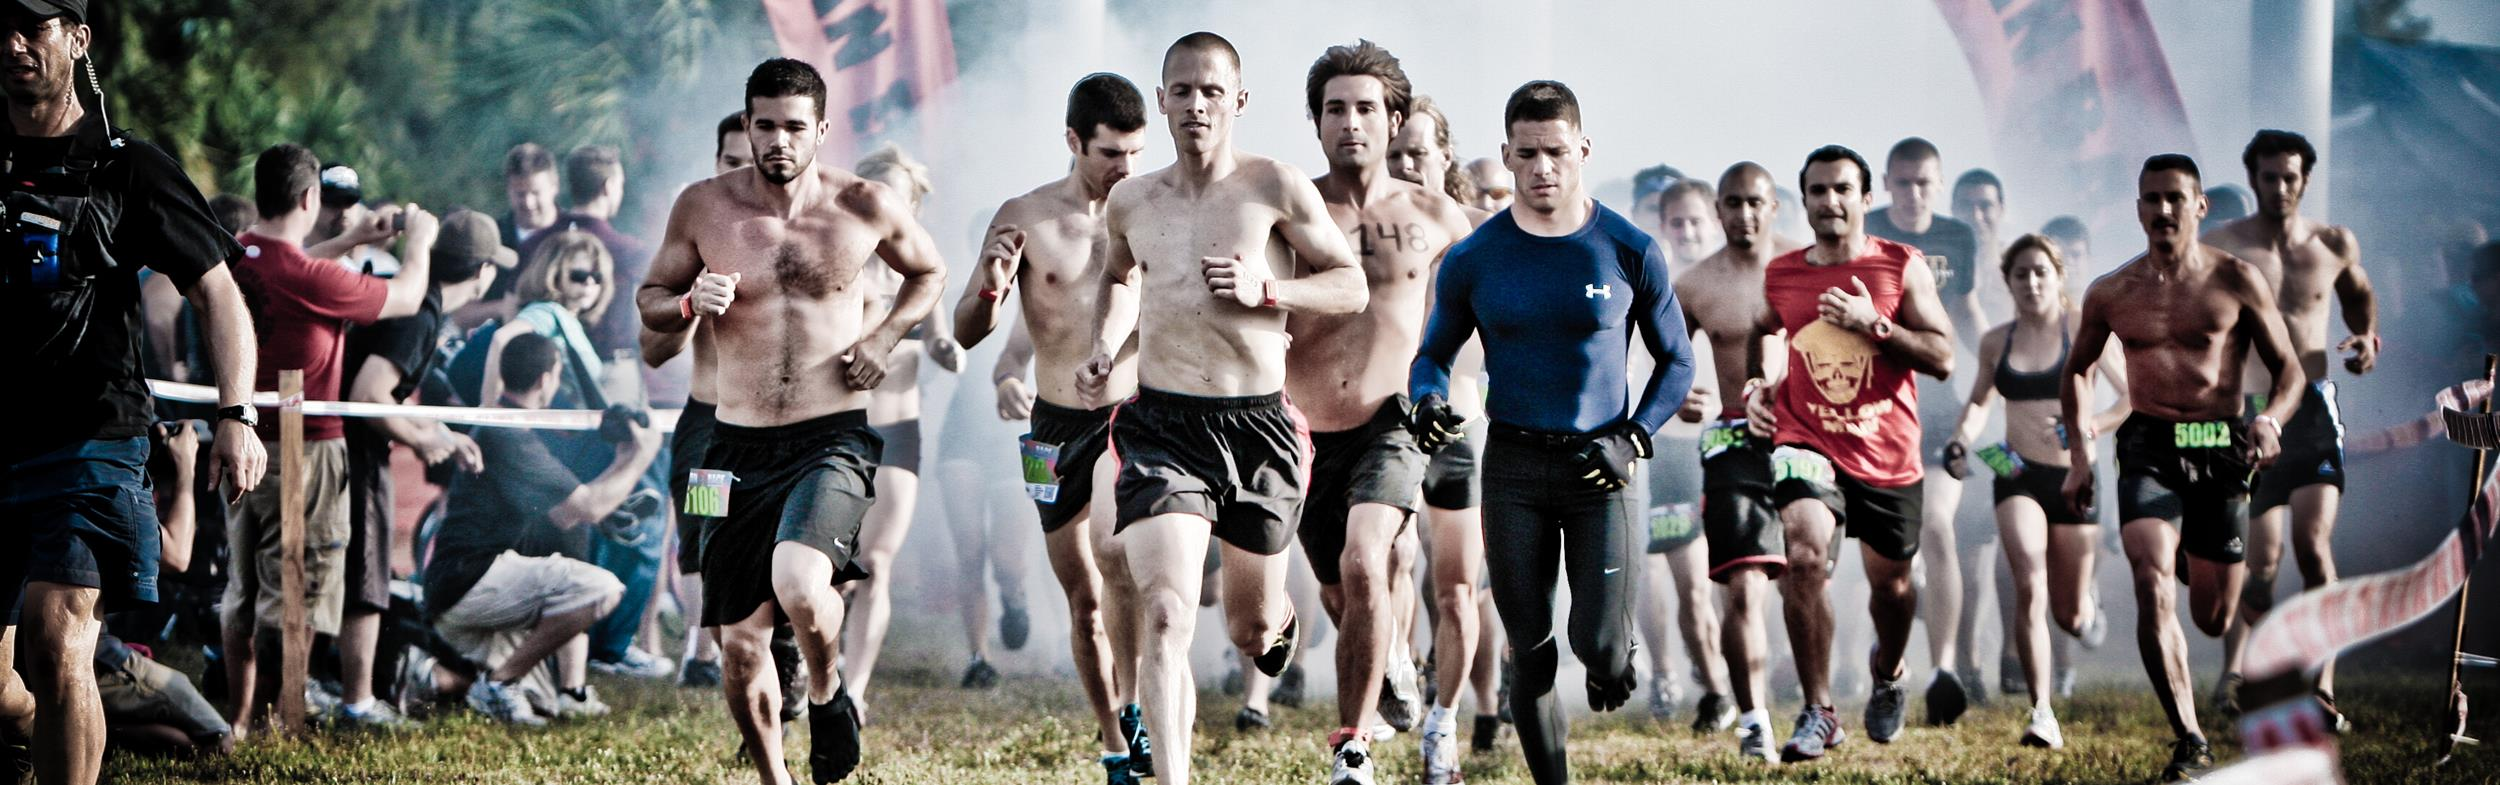 spartan-race-world-championship-1.jpg